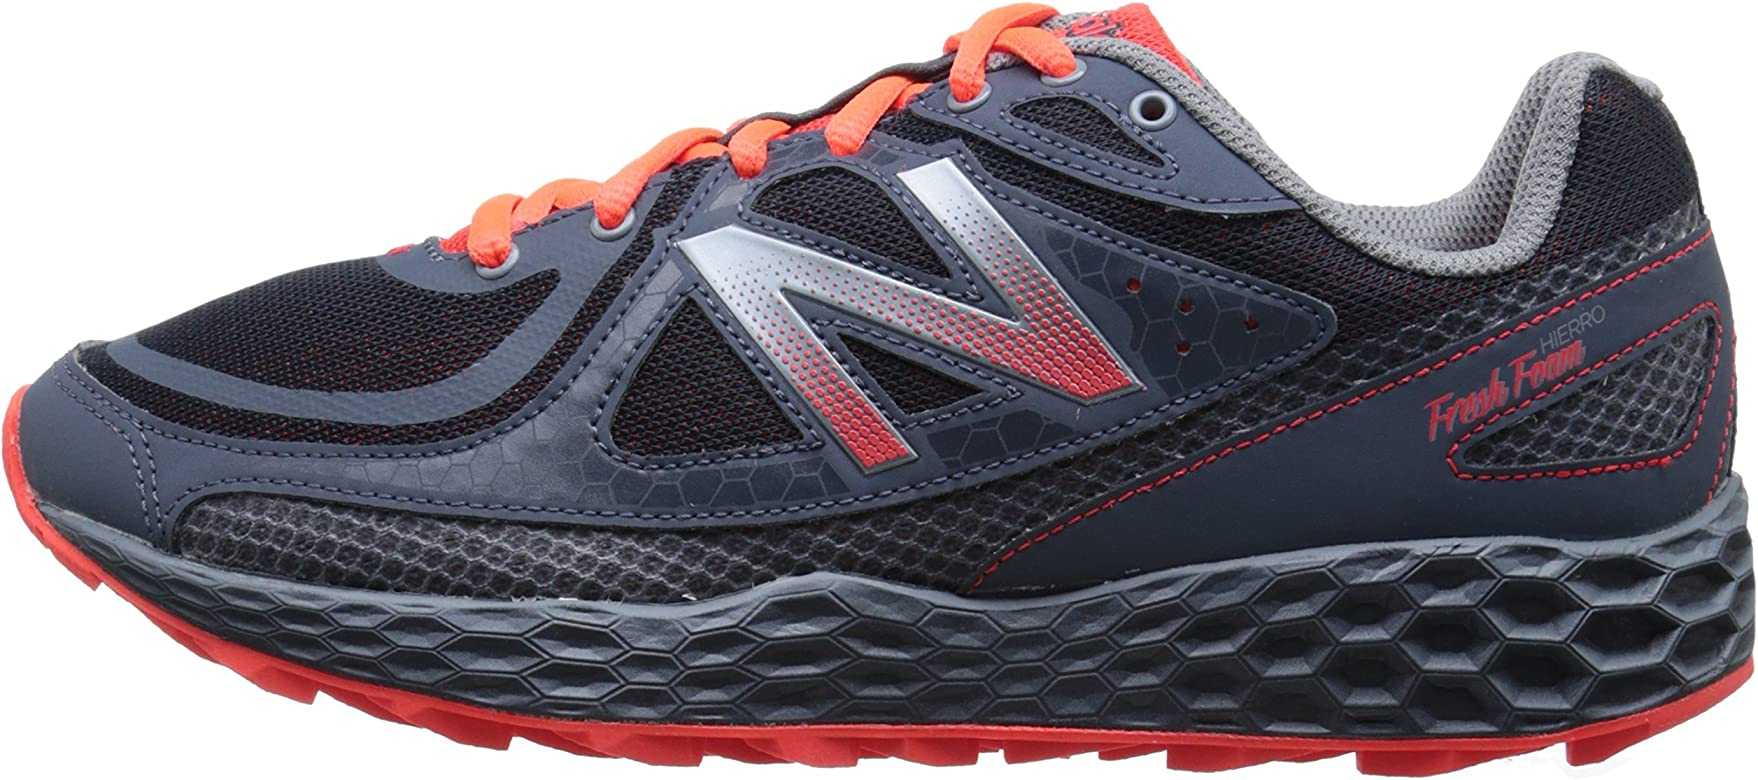 New Balance Running Mthier, Negro, 45M(EU): Amazon.es: Zapatos y ...